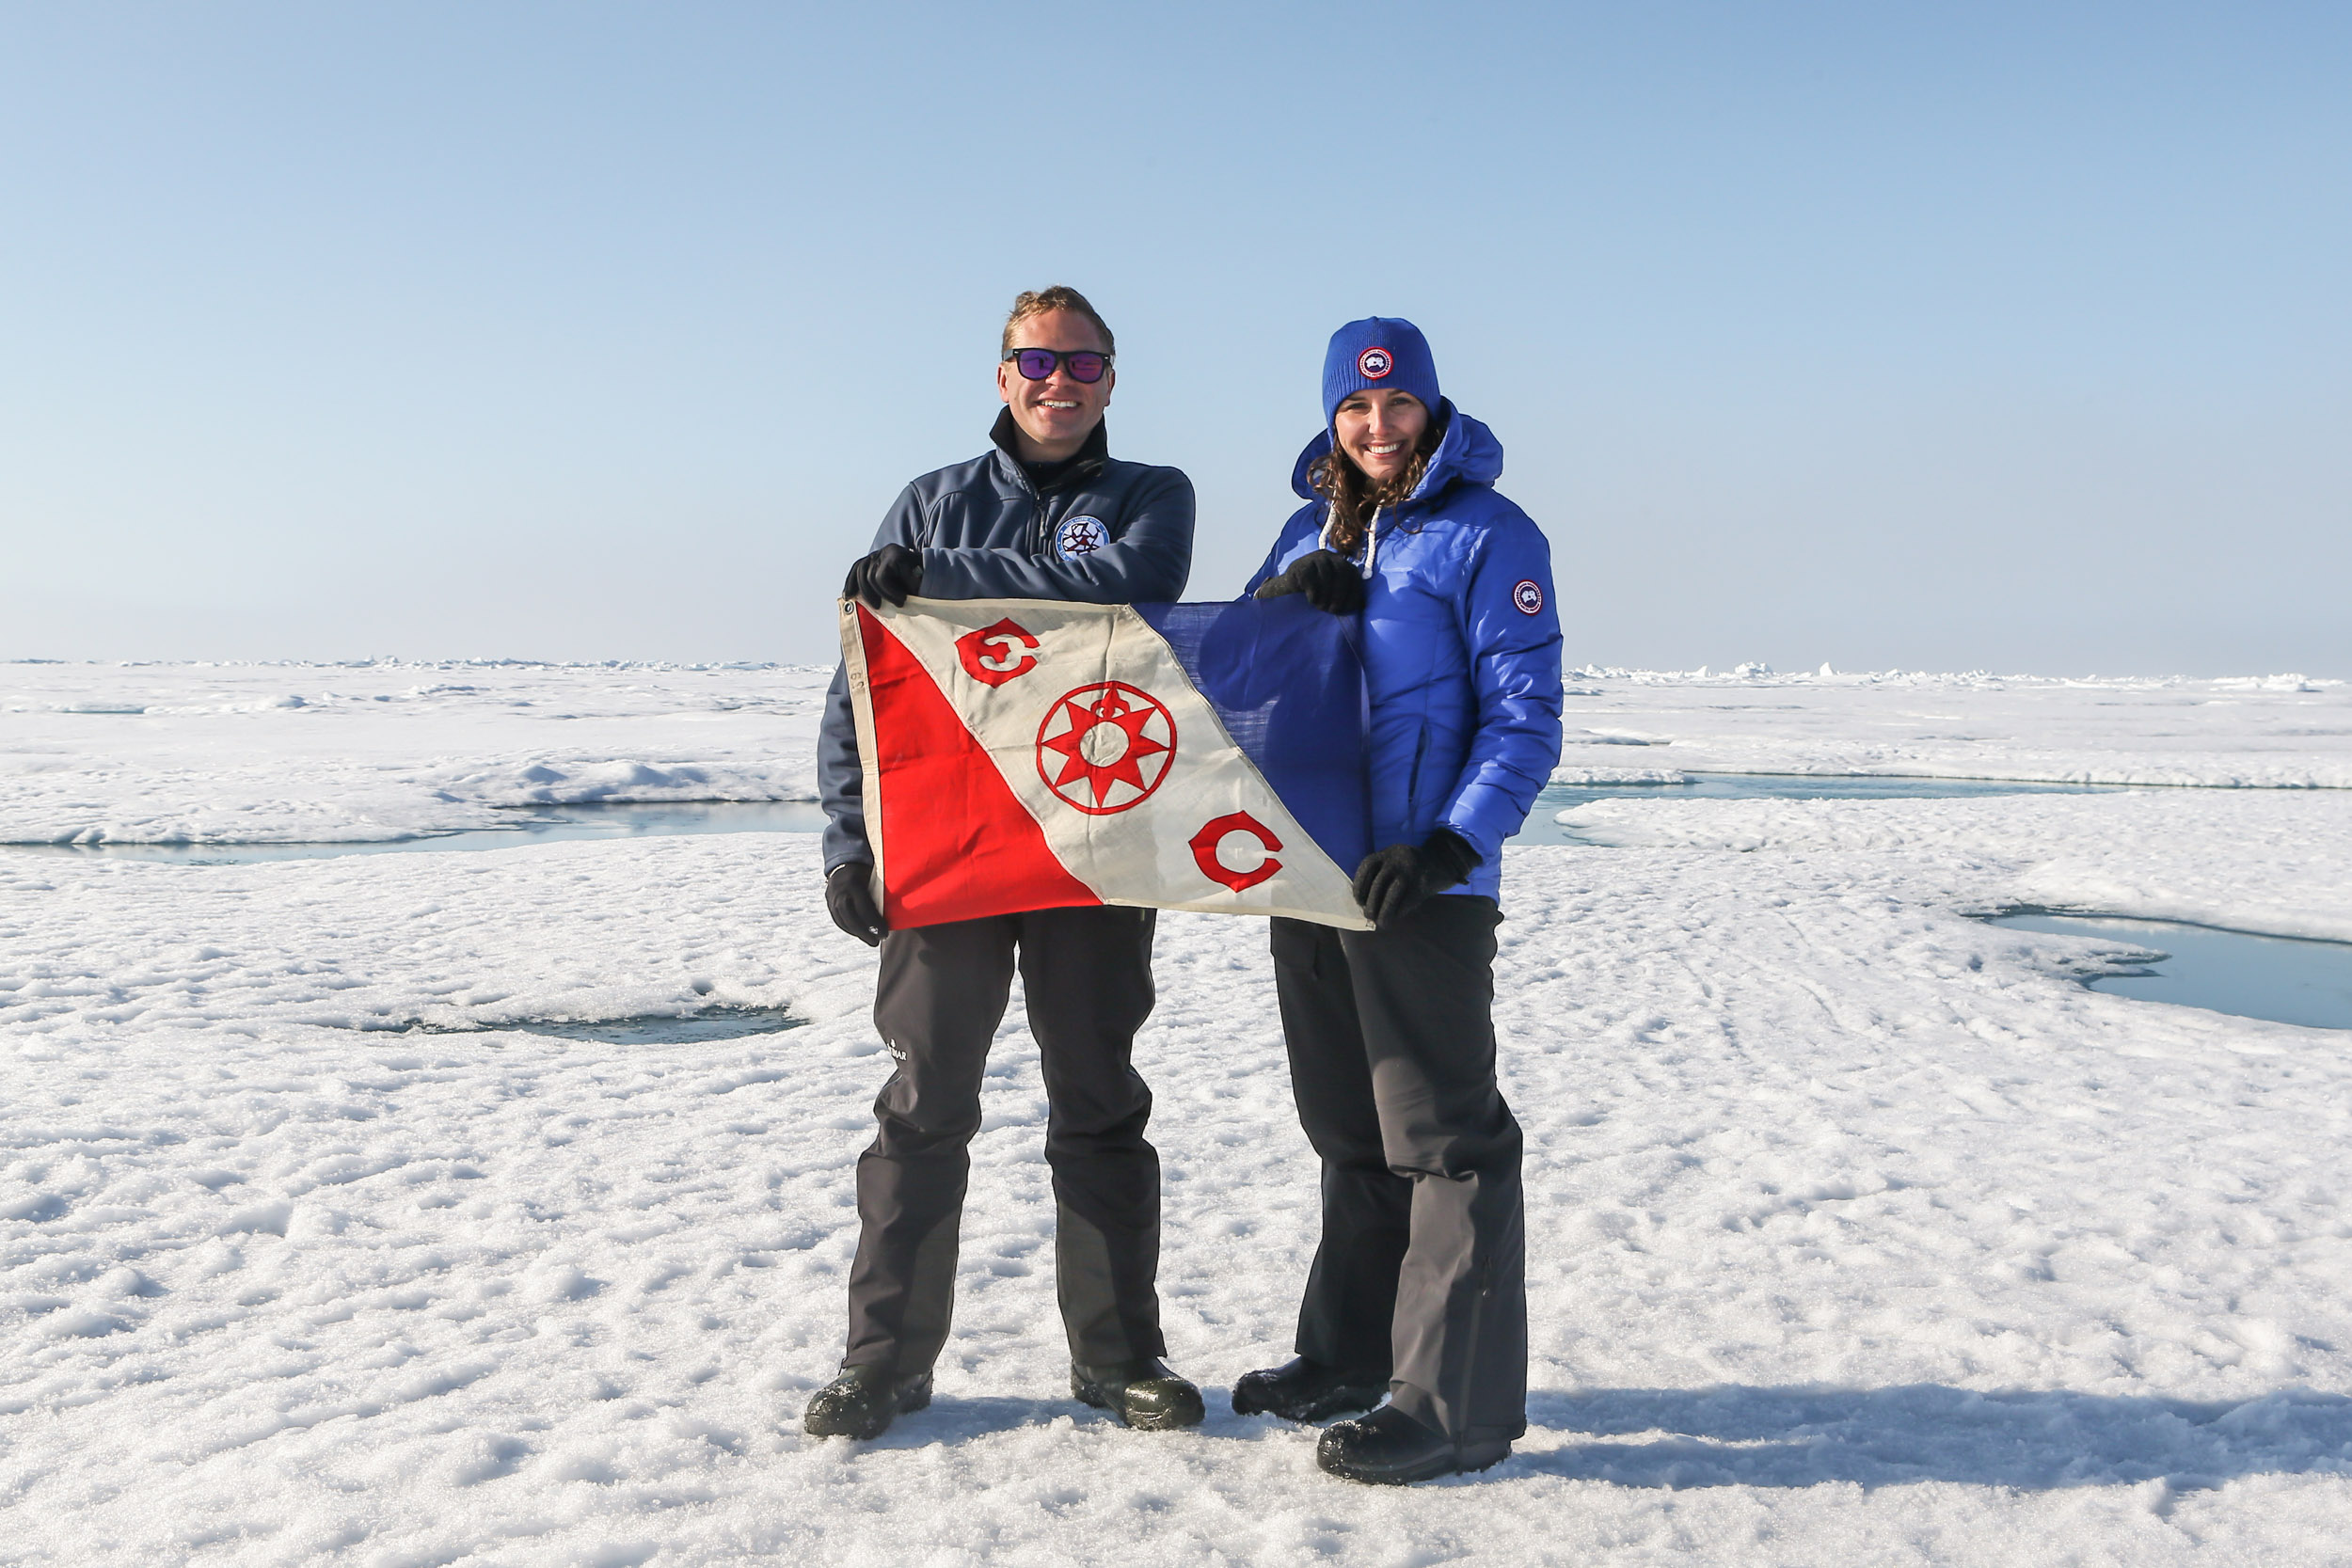 Lauren and Alex at The Geographical North Pole with Explorer's Club Flag #69